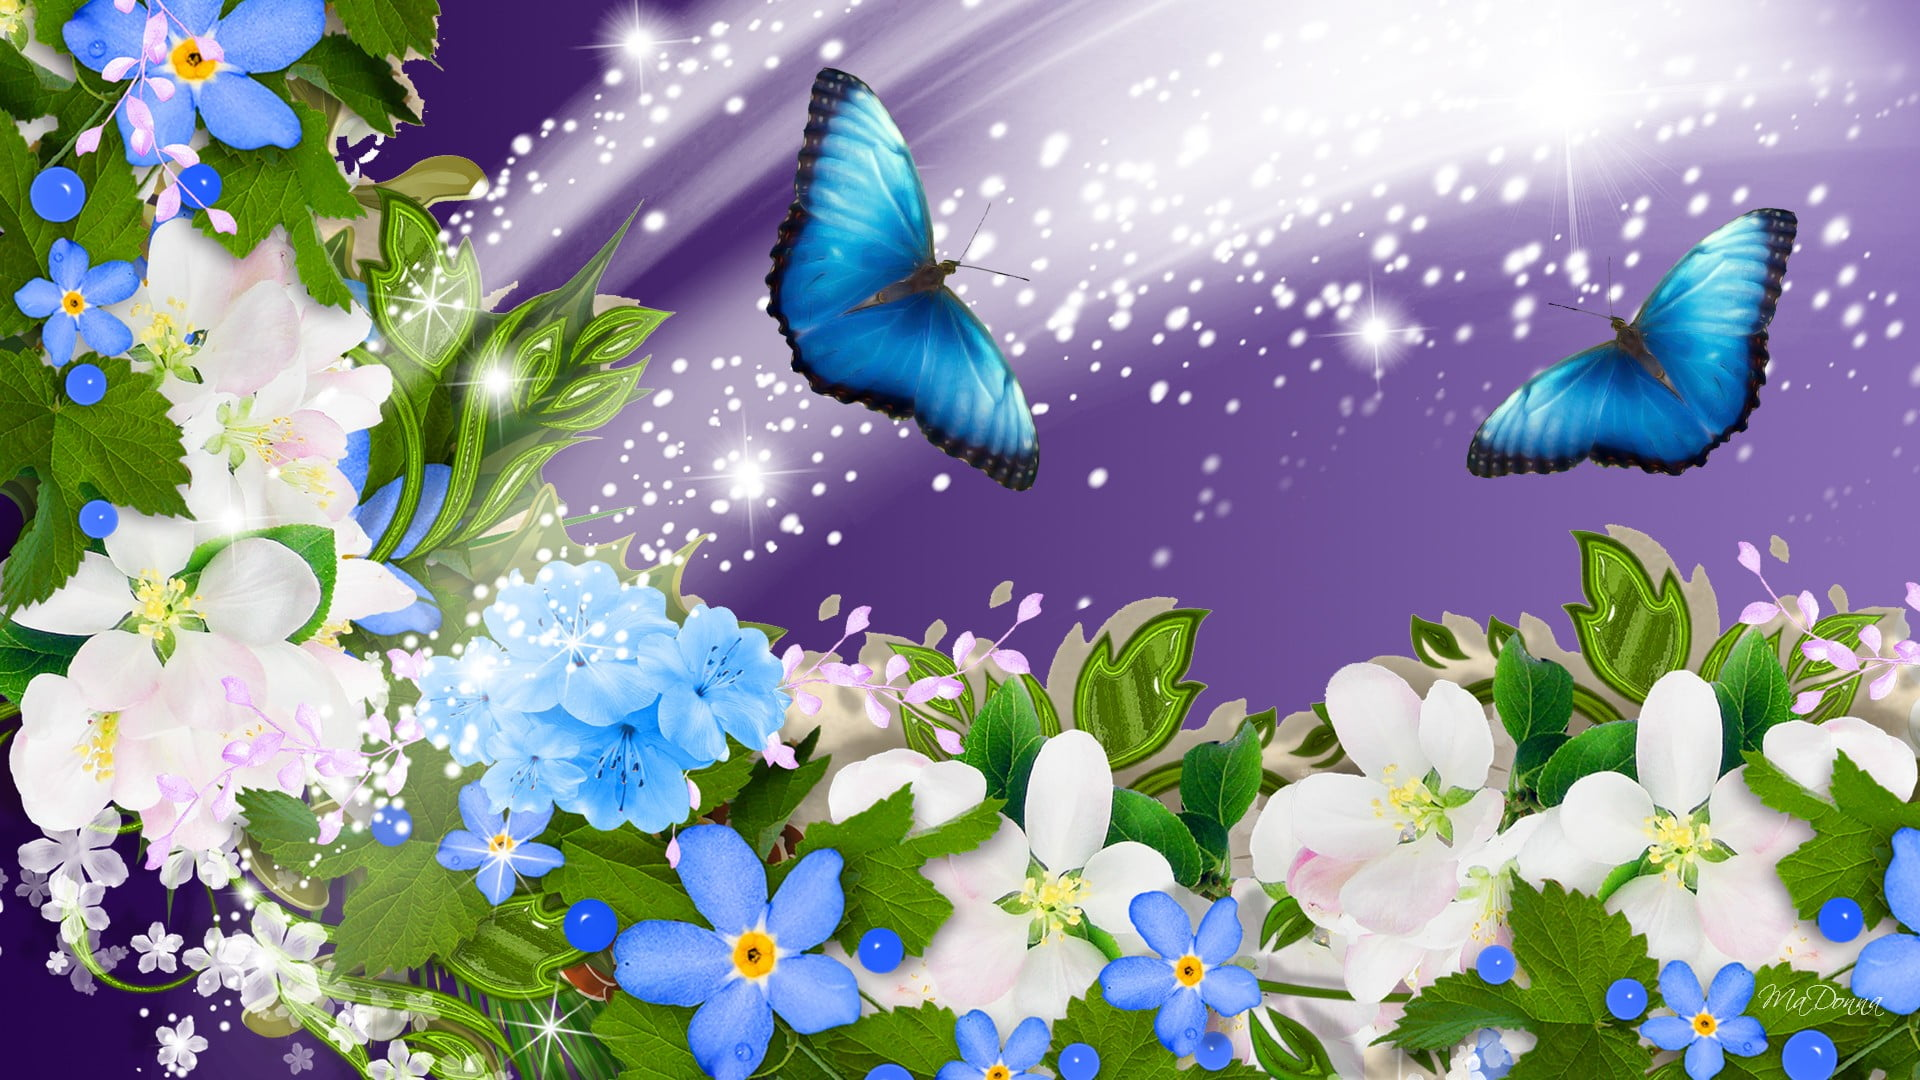 Iphone 2g Wallpaper For Iphone X Two Blue Butterflies Flying Above The Blue Flowers